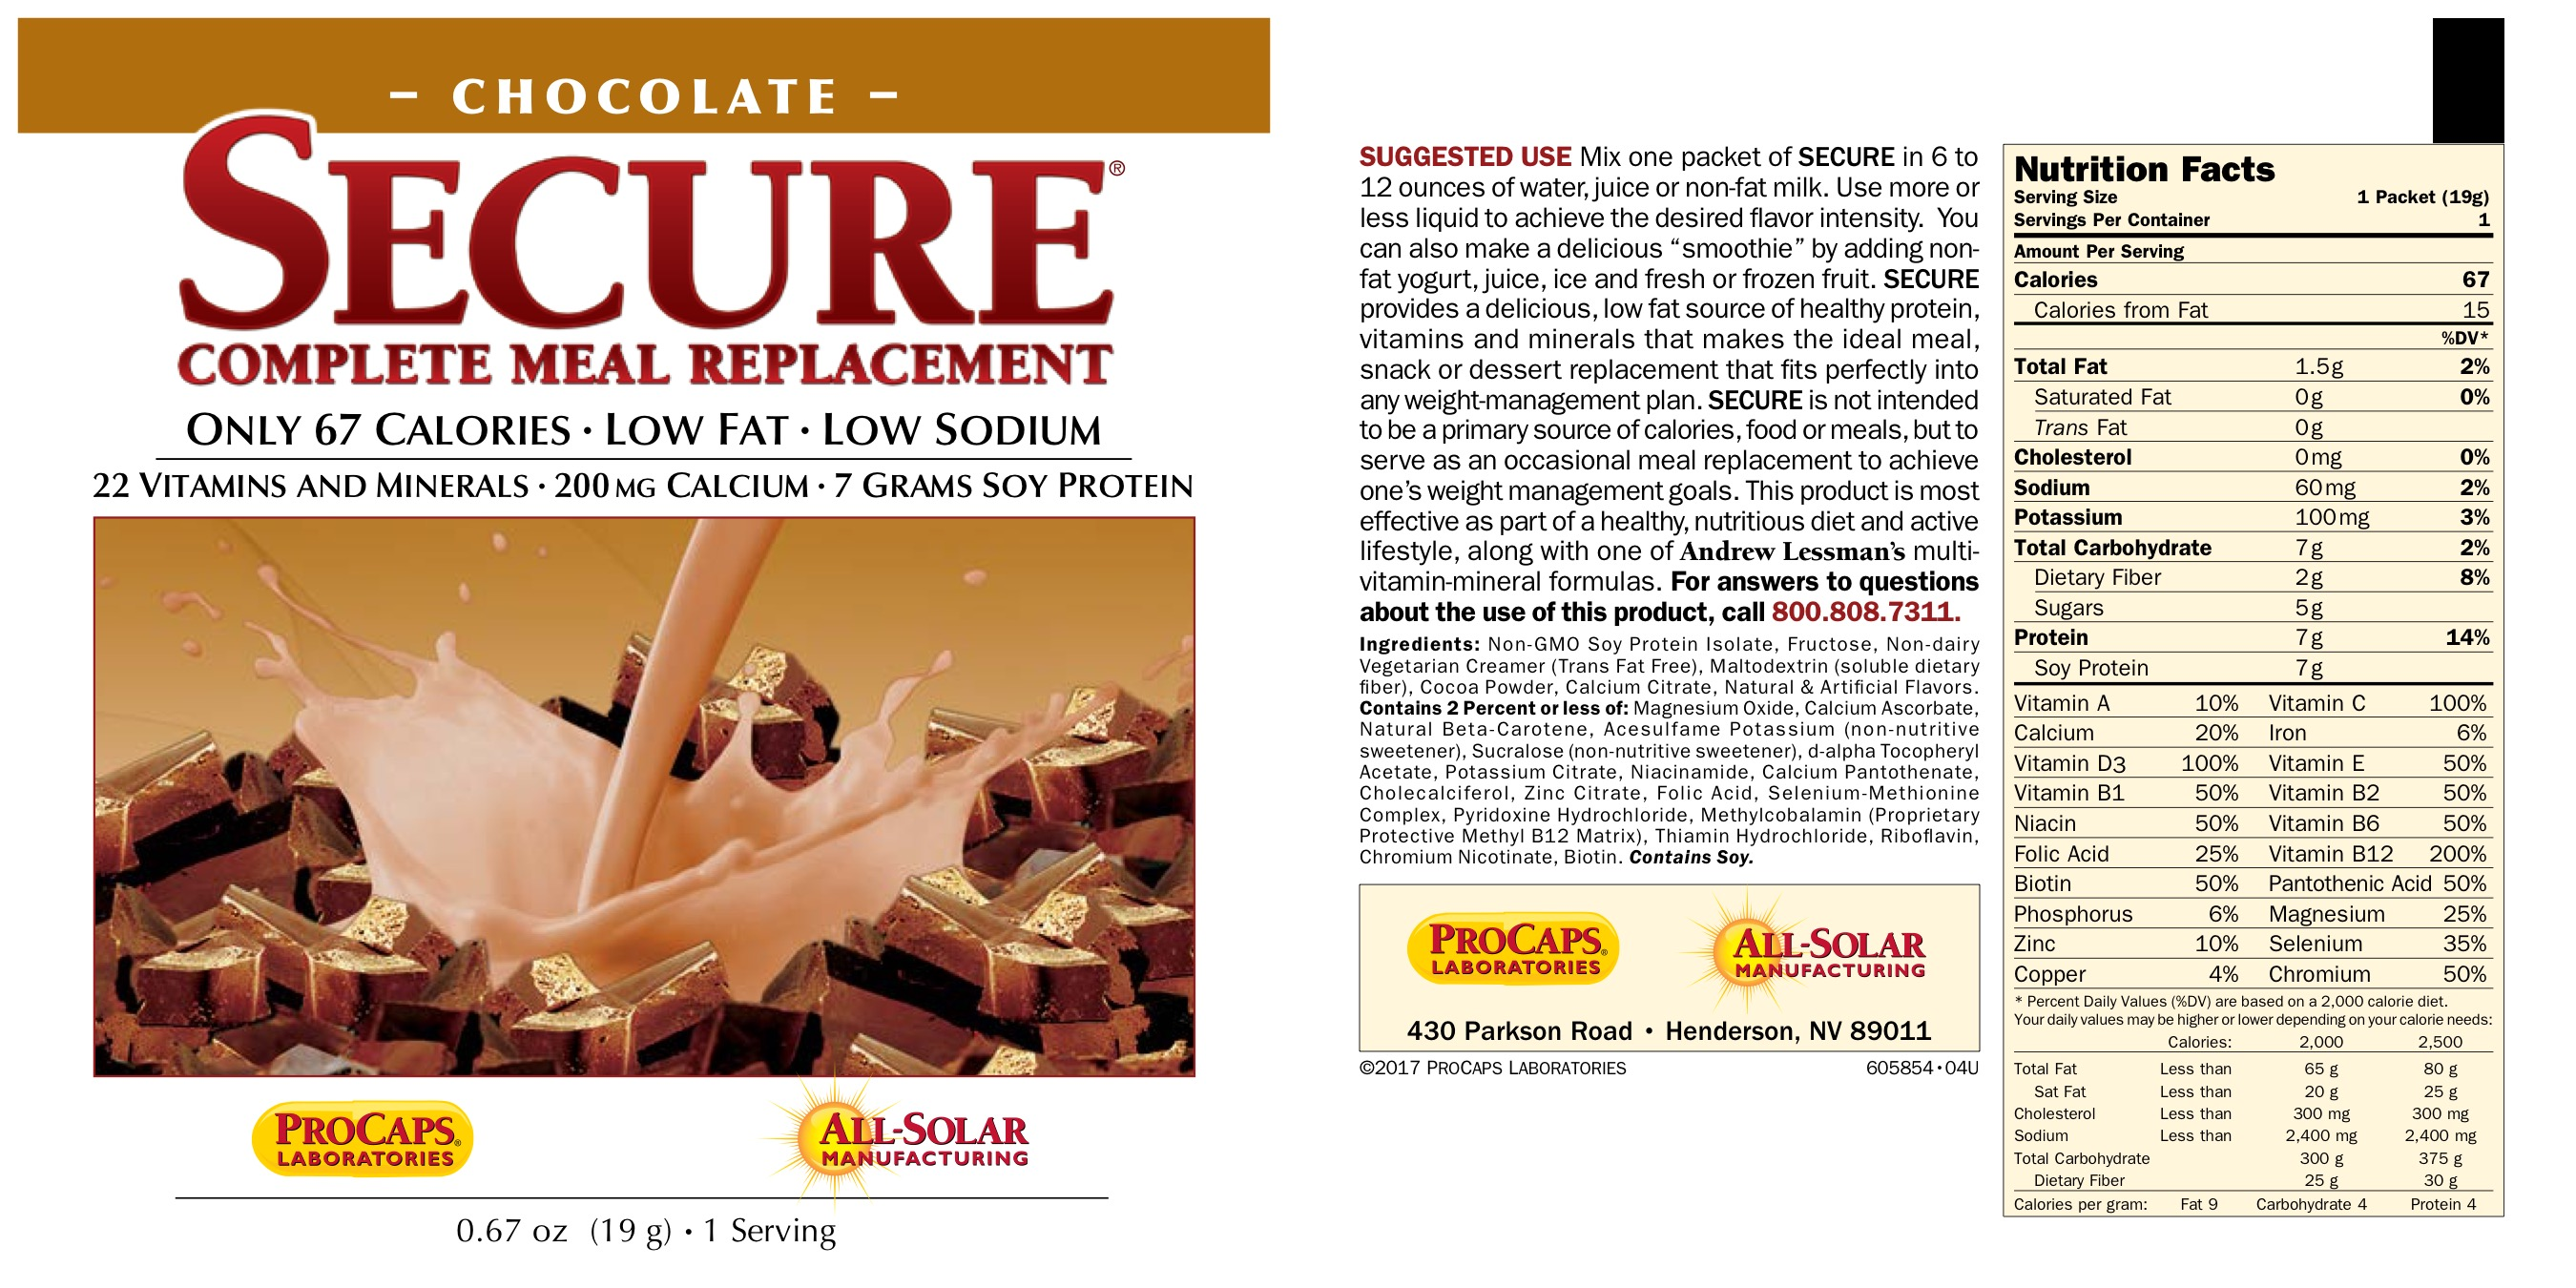 Secure-Soy-Complete-Meal-Replacement-Chocolate-Packets-Weight-Management